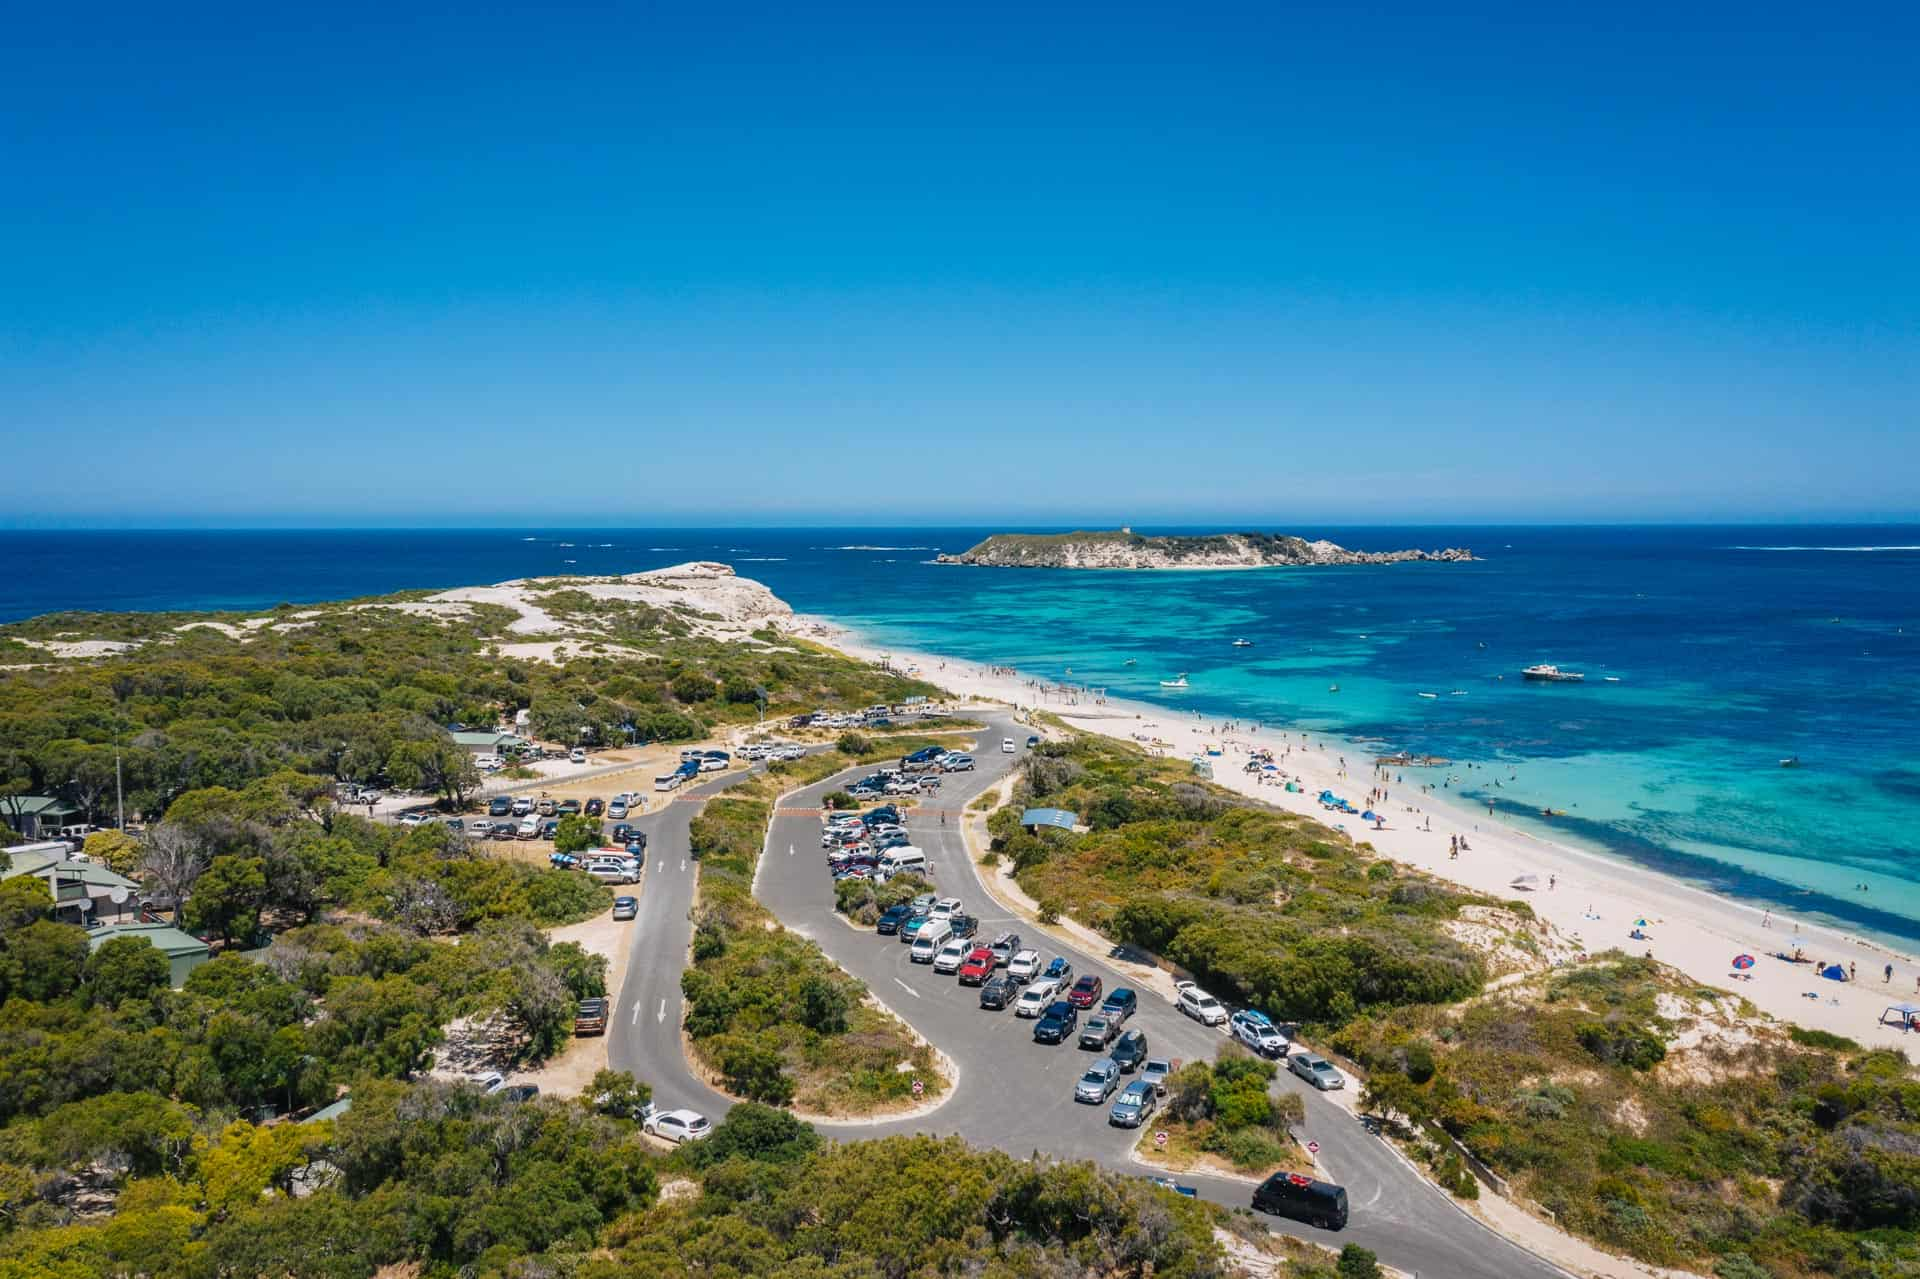 things to do in margaret river, what to do in margaret river, best things to do in margaret river, things to do margaret river, hamelin bay